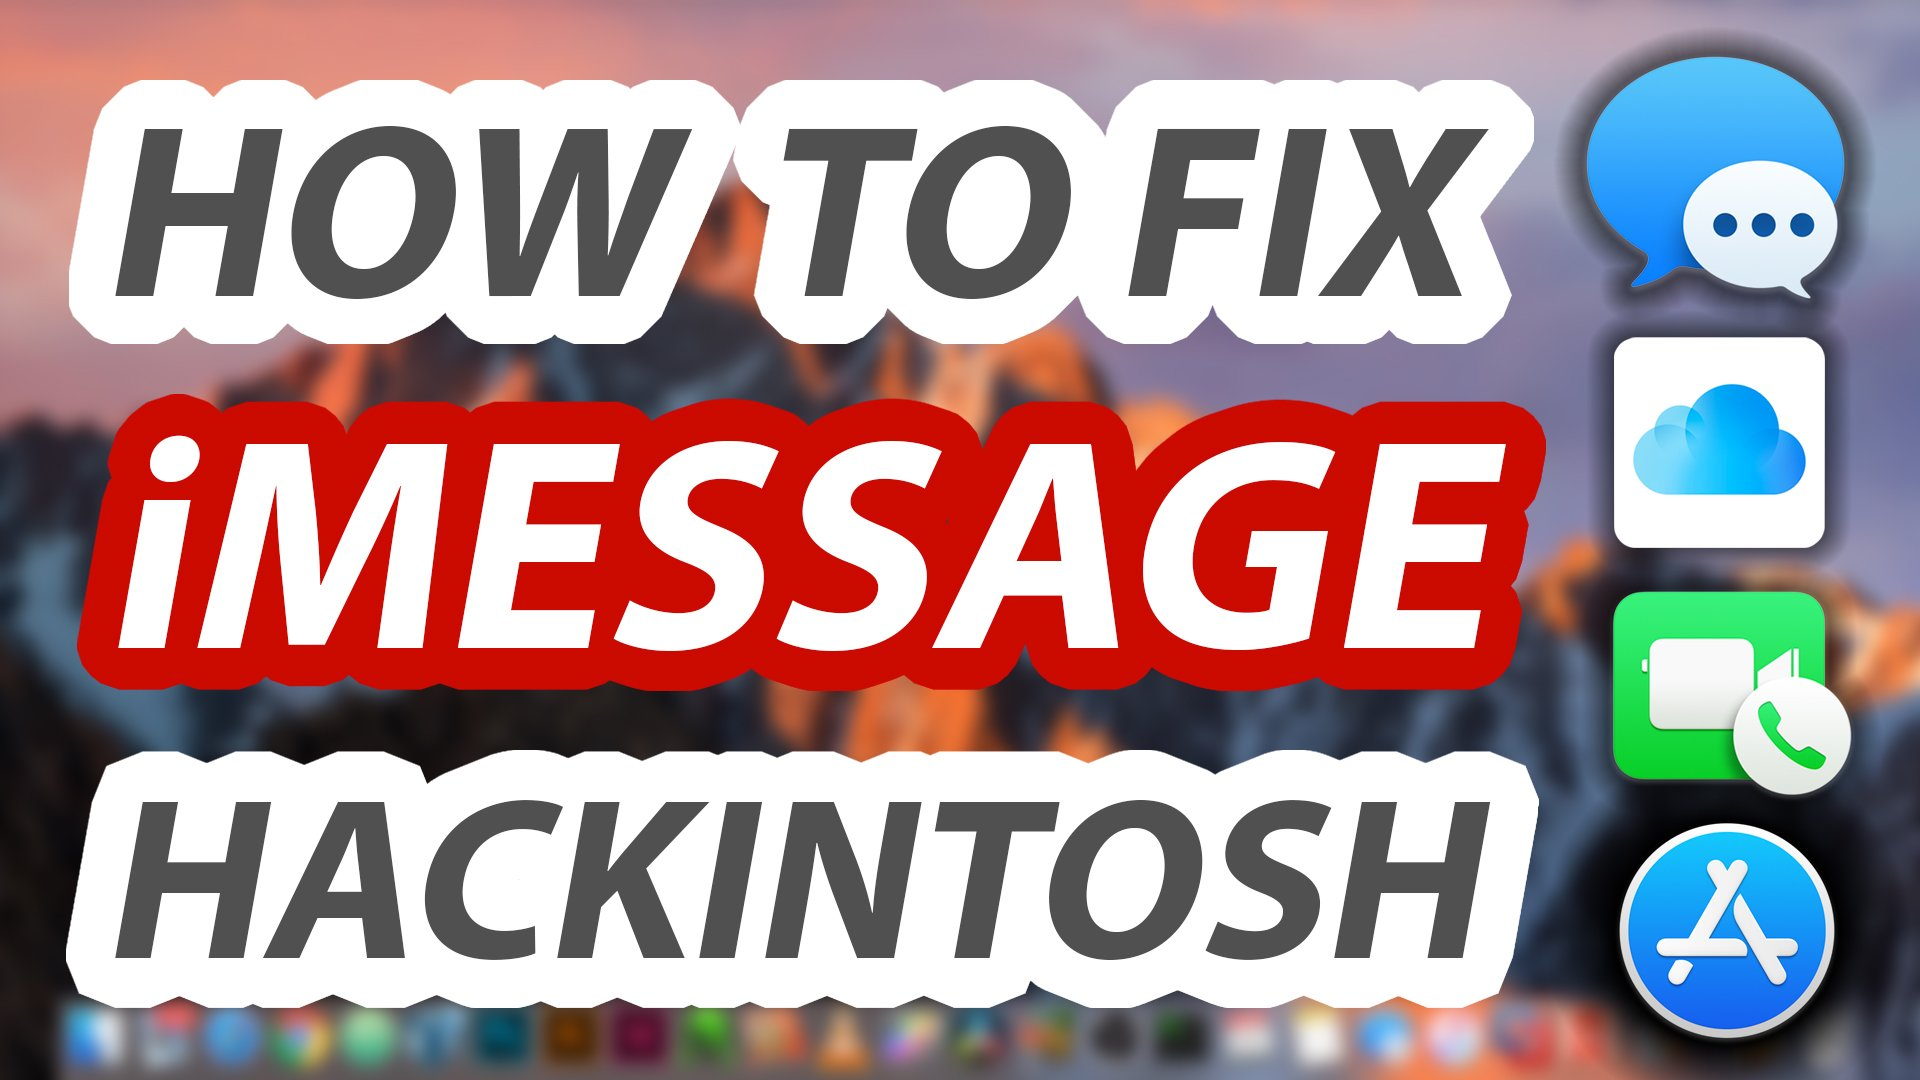 How to Fix iMessage FaceTime iCloud on Hackintosh - Step By Step TUTORIAL 2018